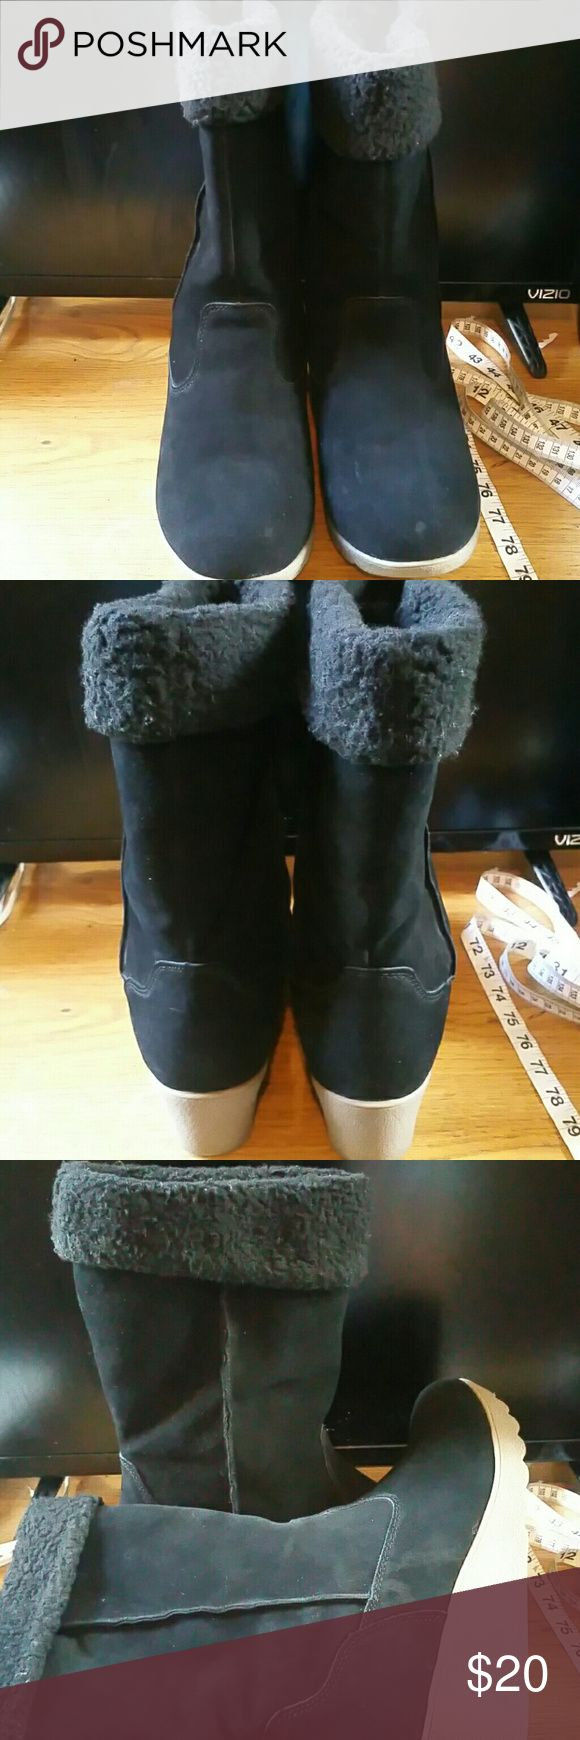 Lands End Faux Suede Wedge Boots 9.5B Pre-Owned Lands End Black Faux Suede Boots  Size 9.5B  Boots were worn several times.. Heels are in good condition.. Material may need a good cleaning Lands' End Shoes Winter & Rain Boots